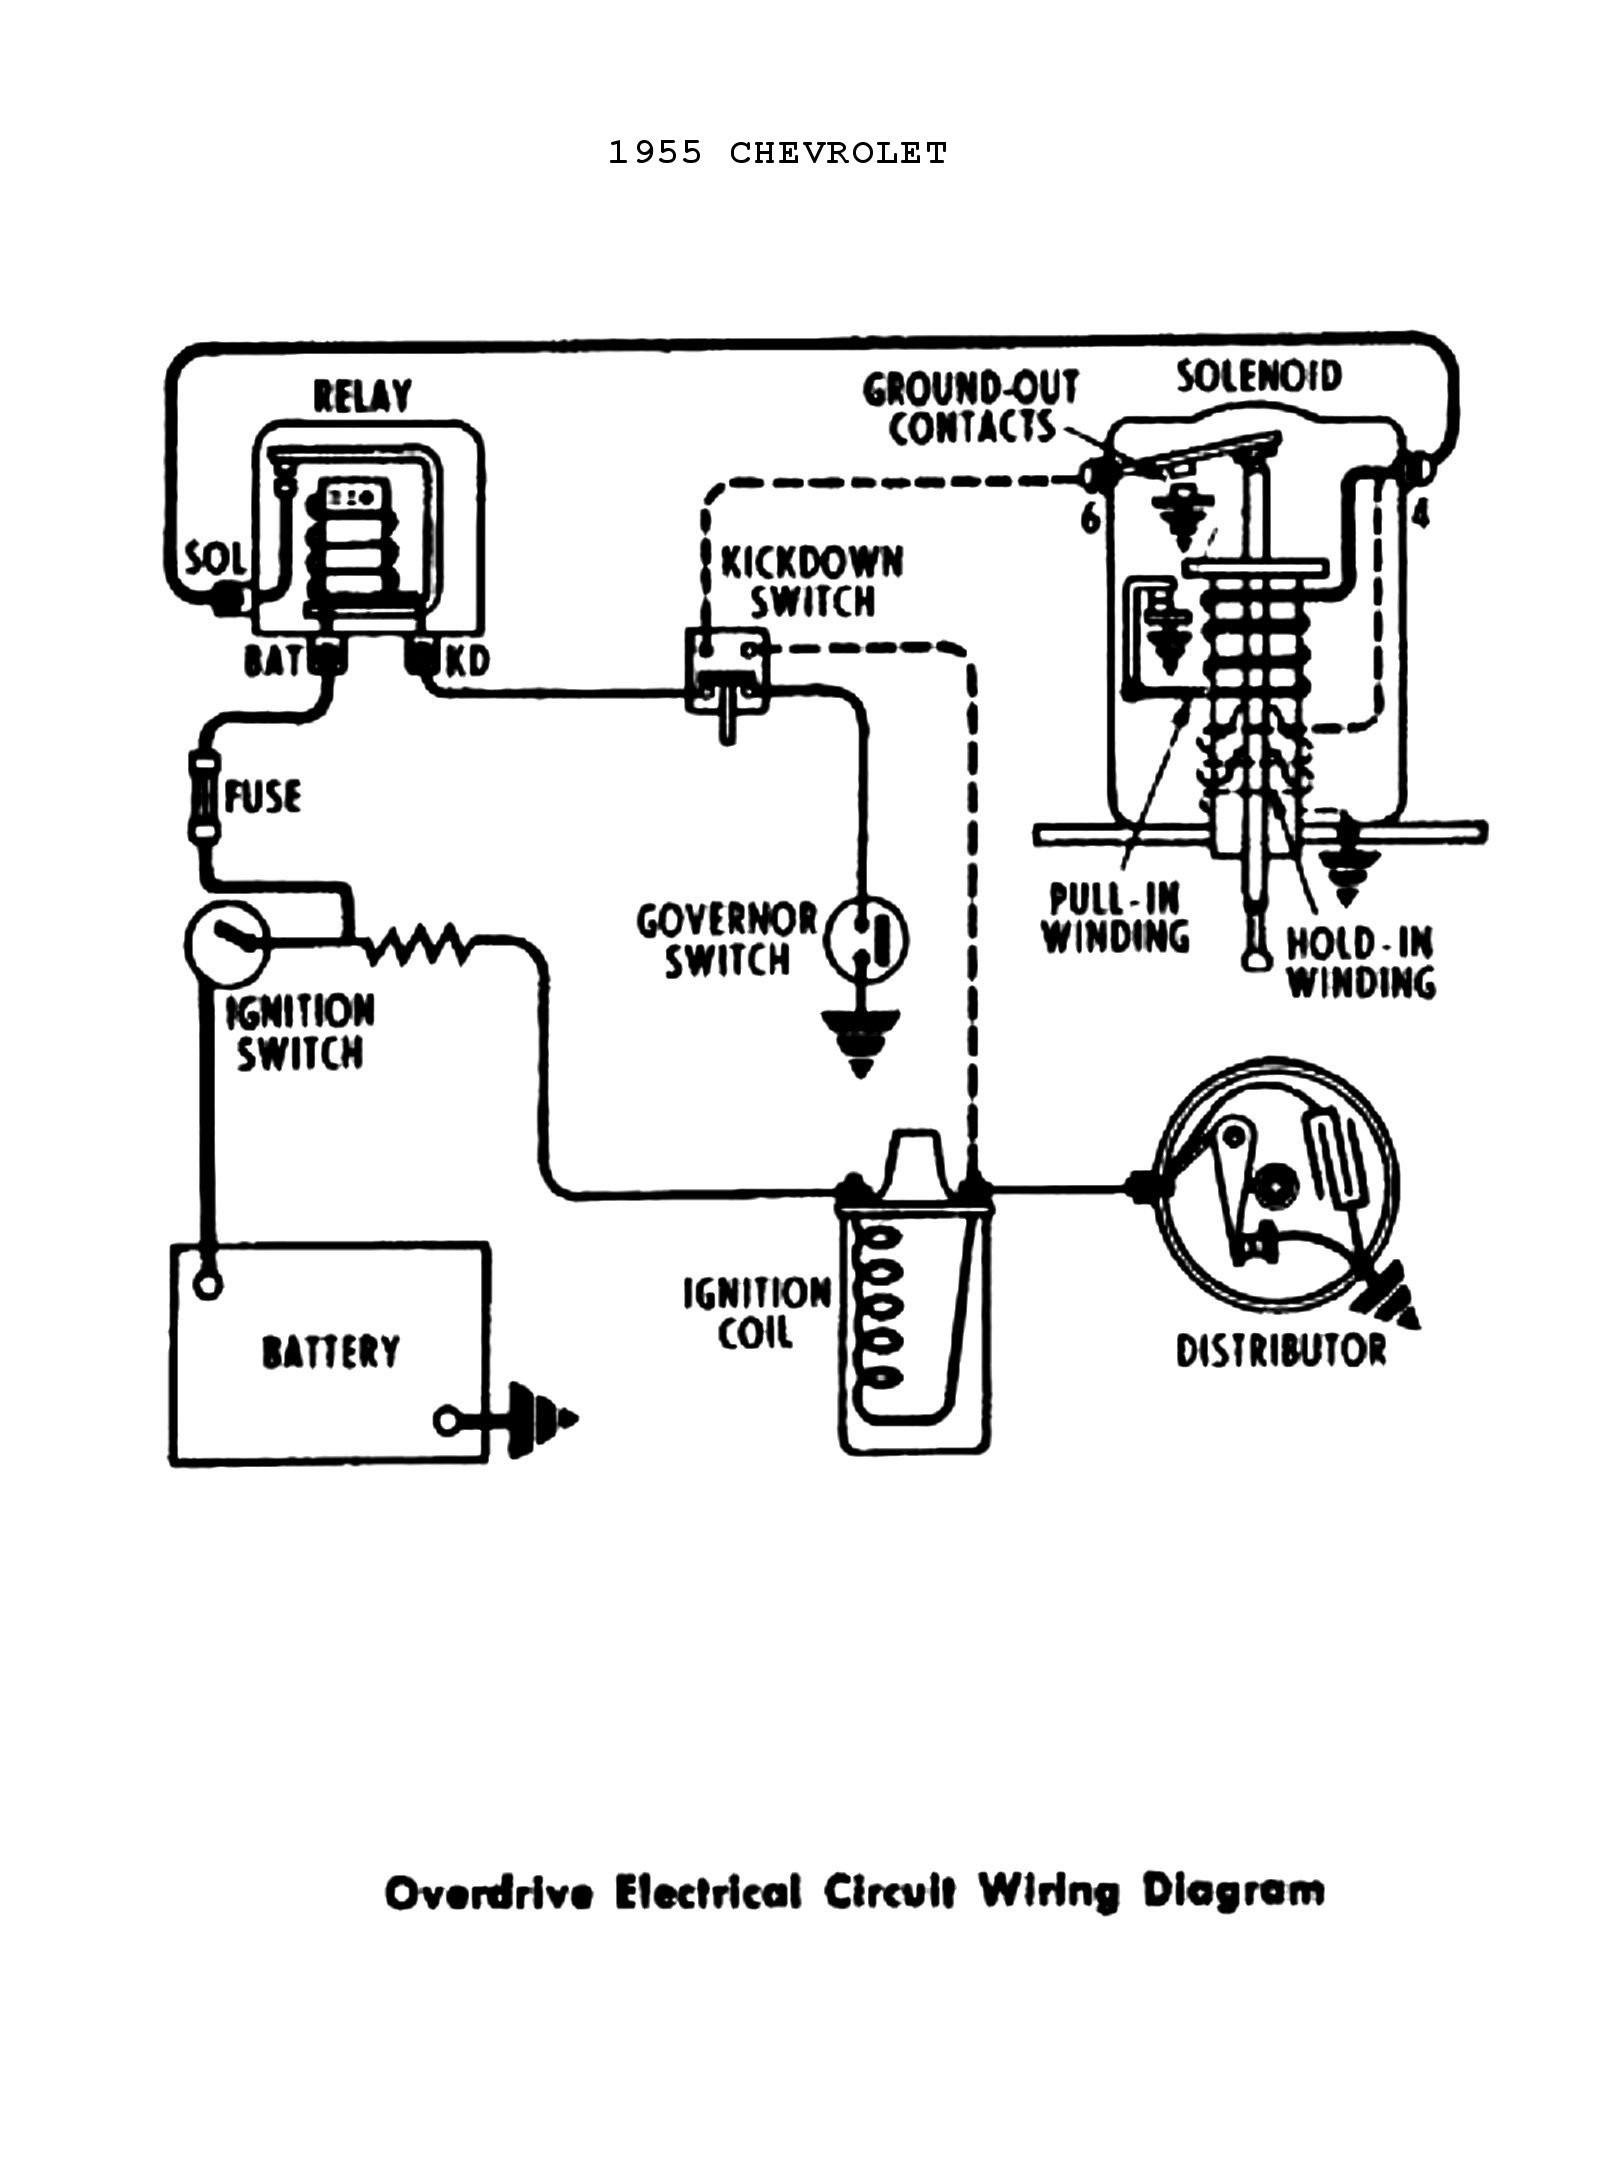 Basic engine wiring diagram chevy truck wiring diagram moreover 1955 chevy ignition switch